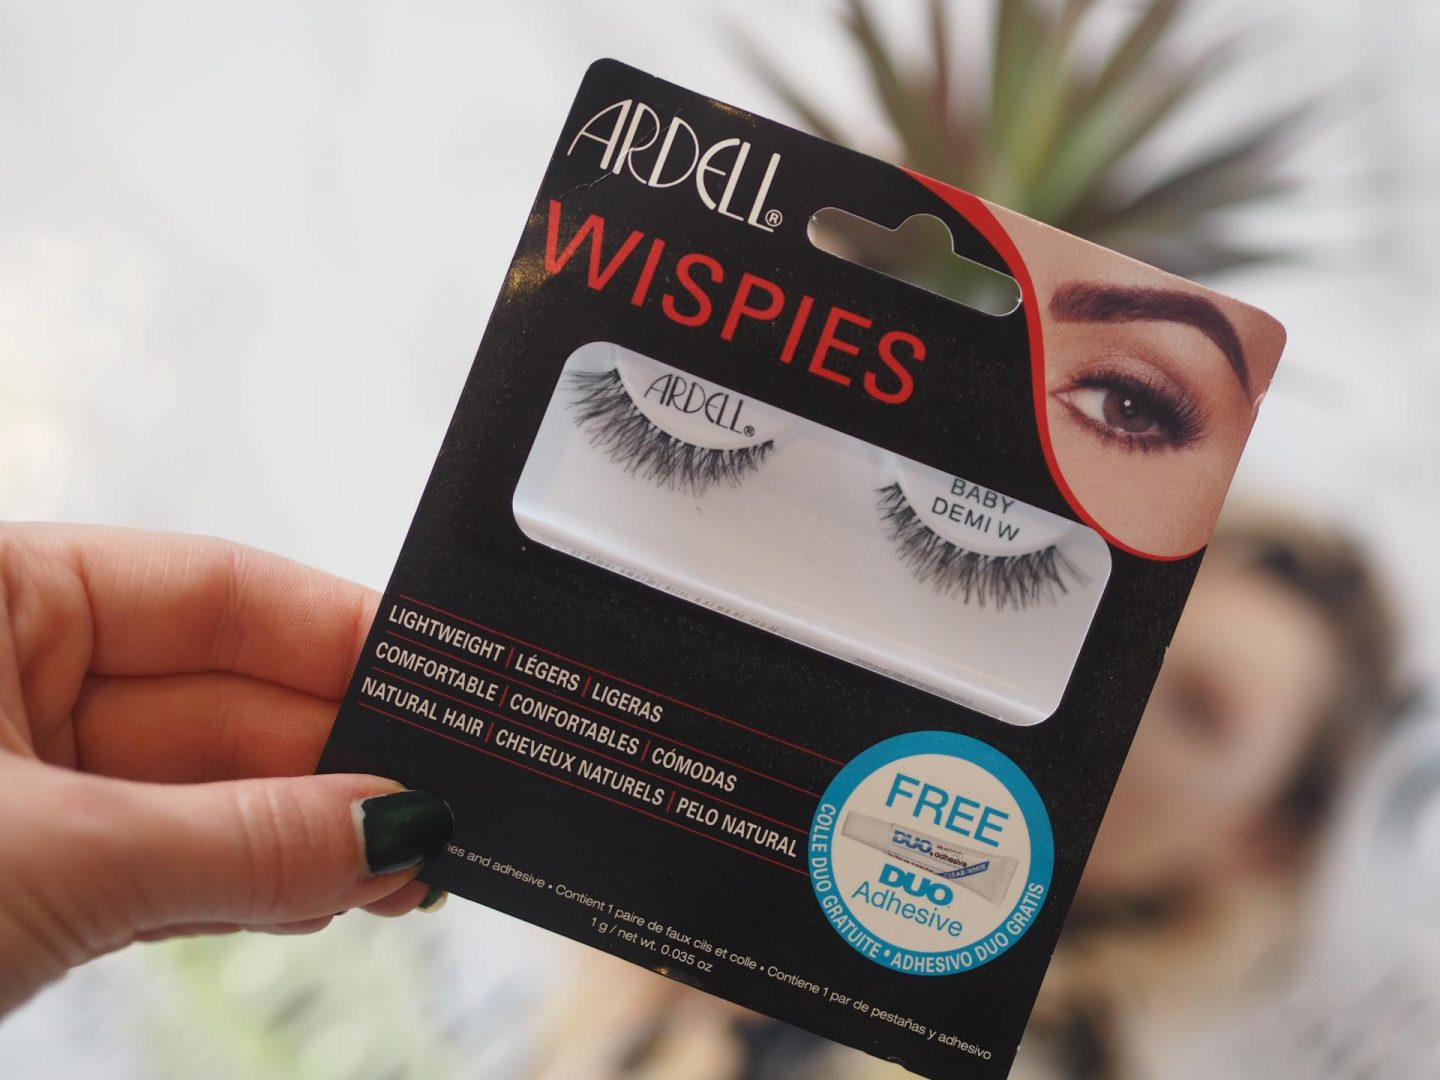 Best Lash And Brow Products - Product: Ardell Wispies Lashes